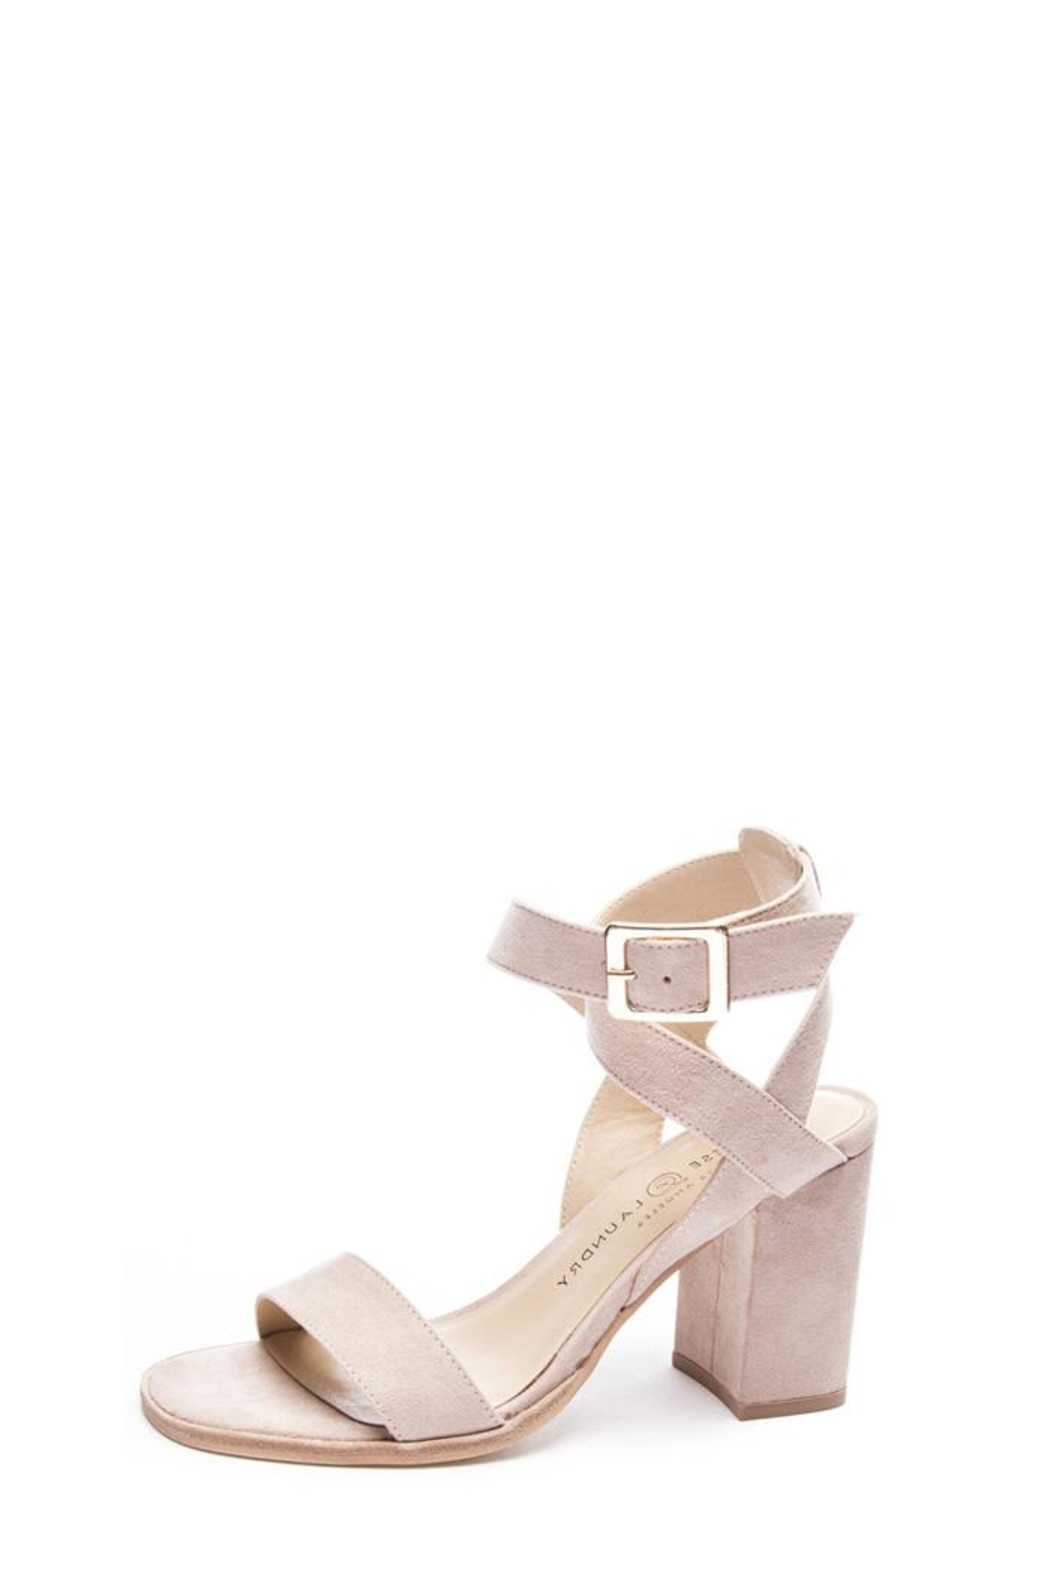 Chinese Laundry Stassi Suede Heel - Main Image